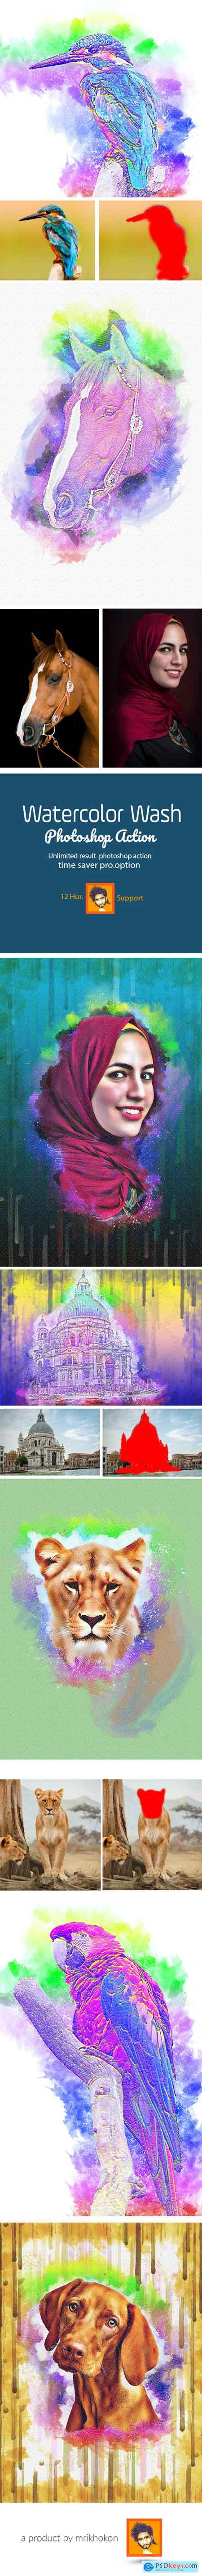 Graphicriver Watercolor Wash Photoshop Action vl 2